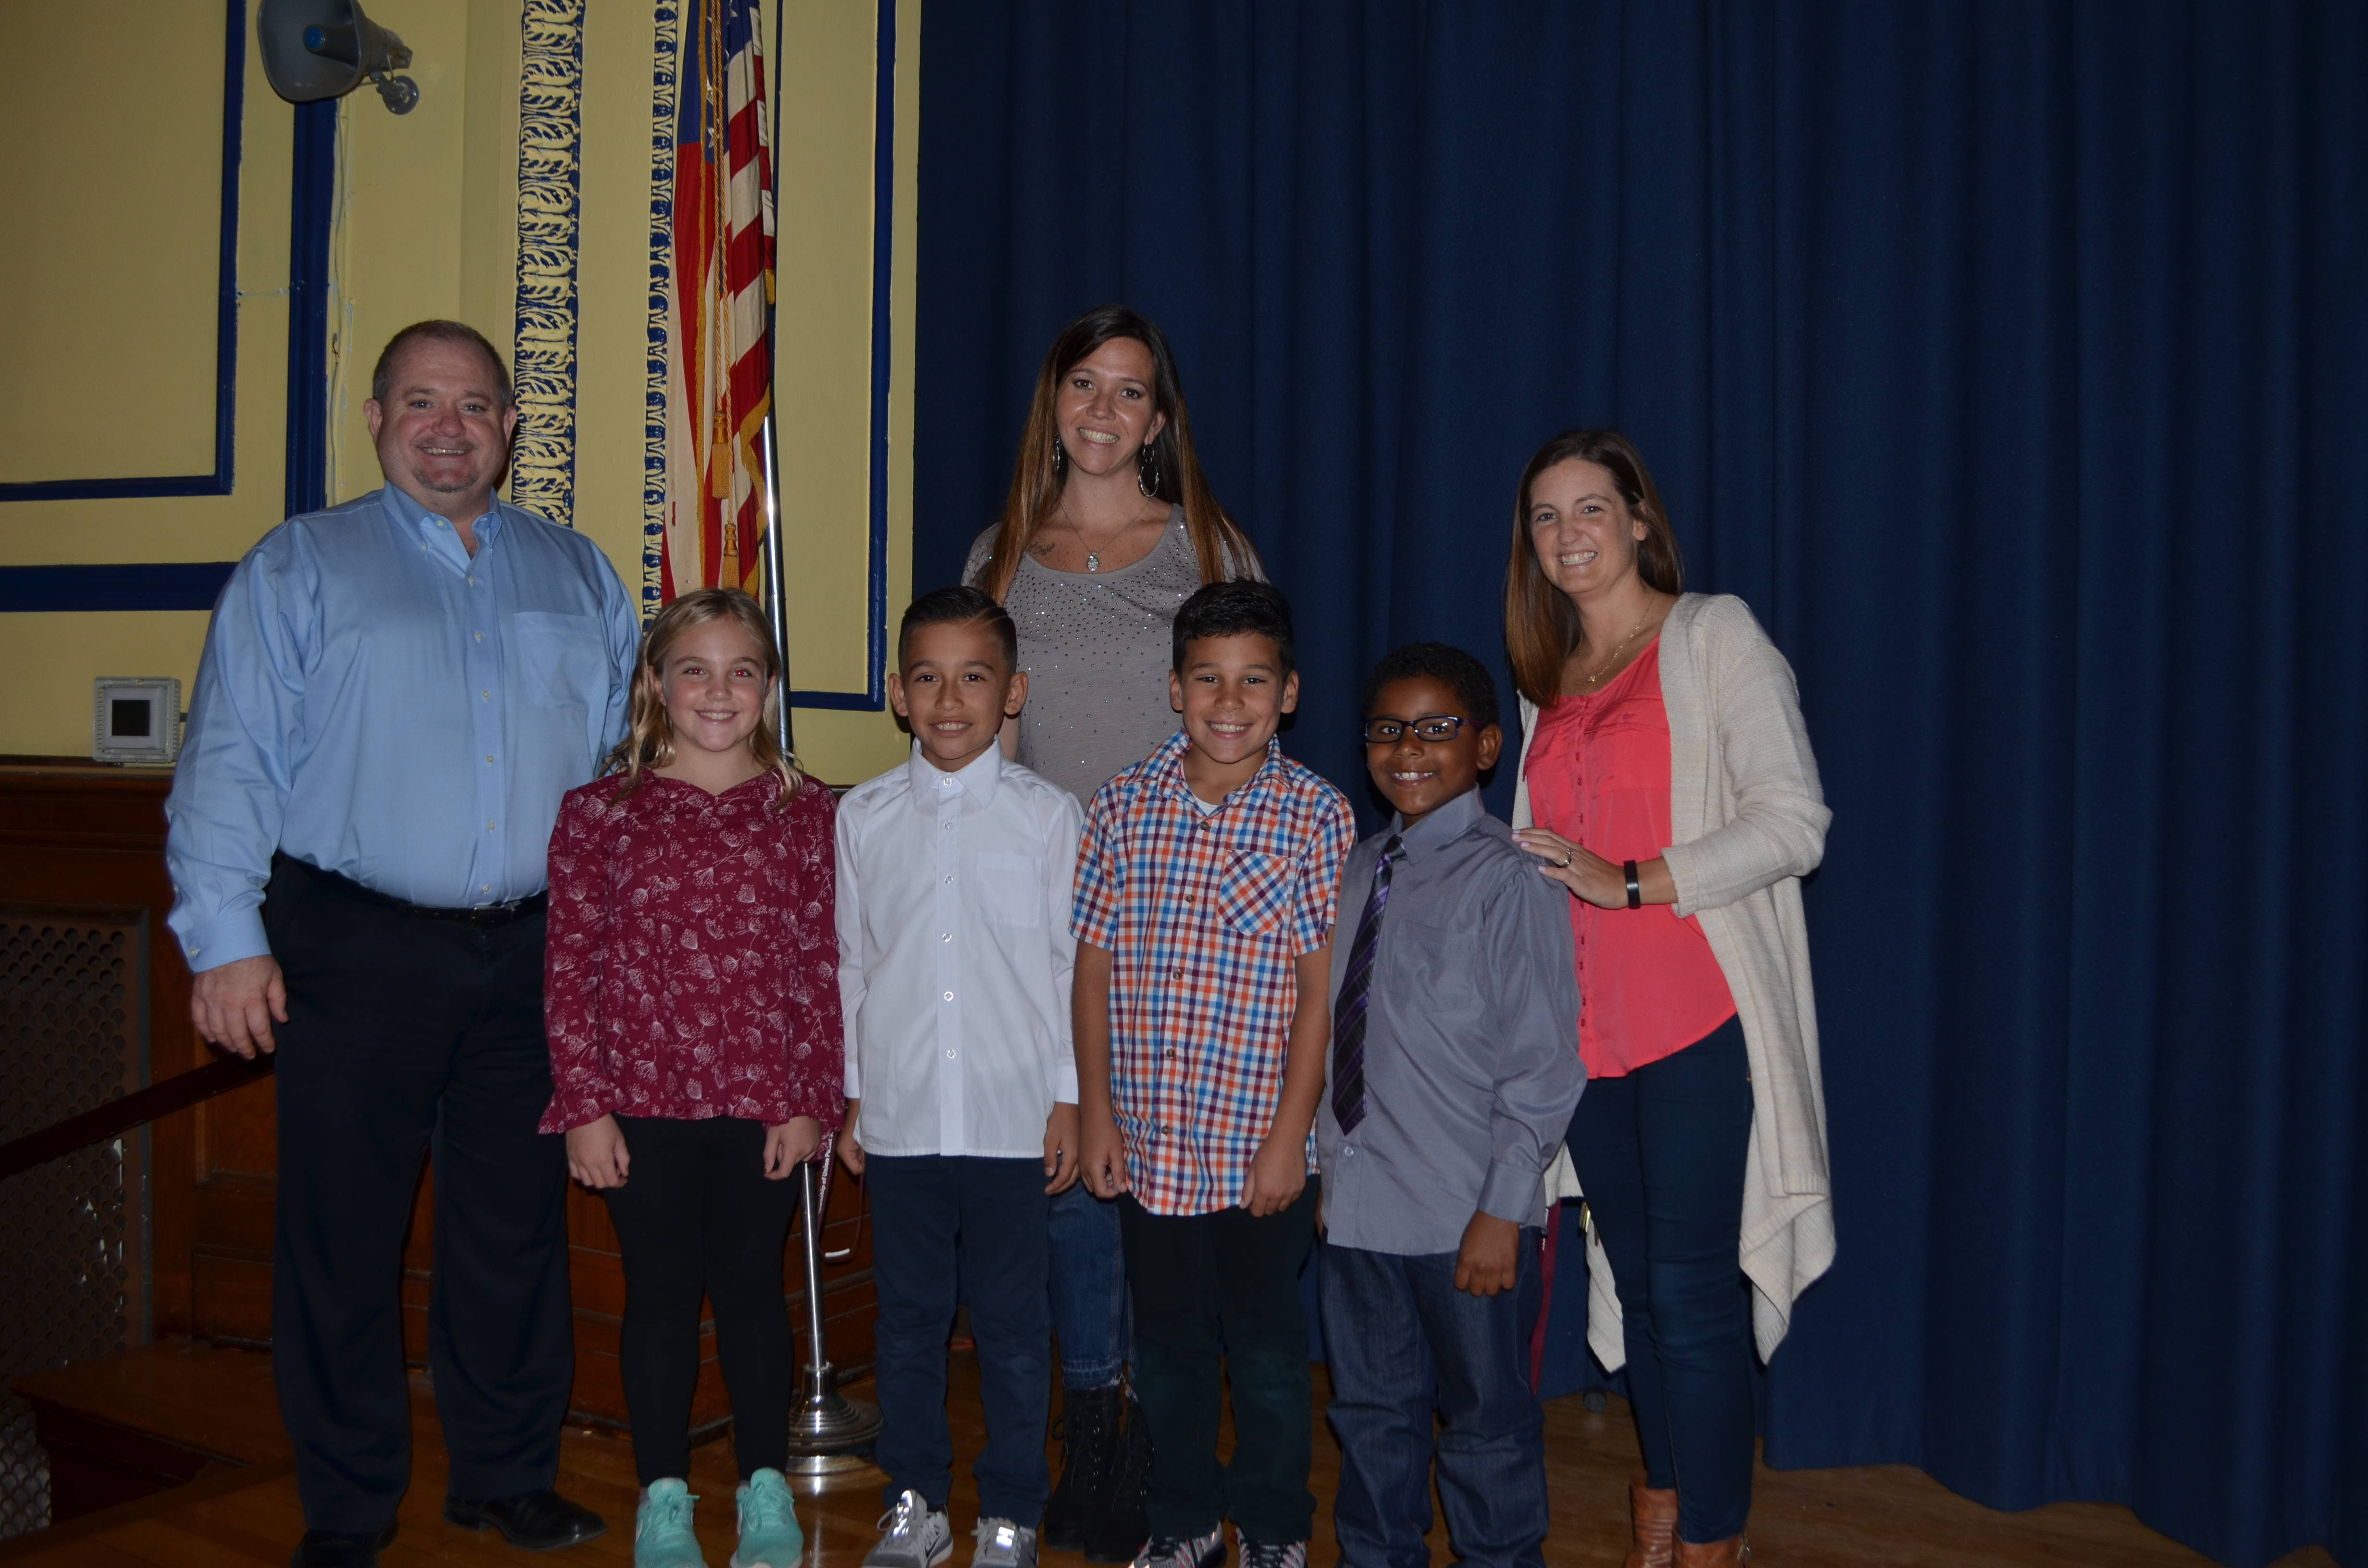 Washington School Elects Student Council Leaders - News ...